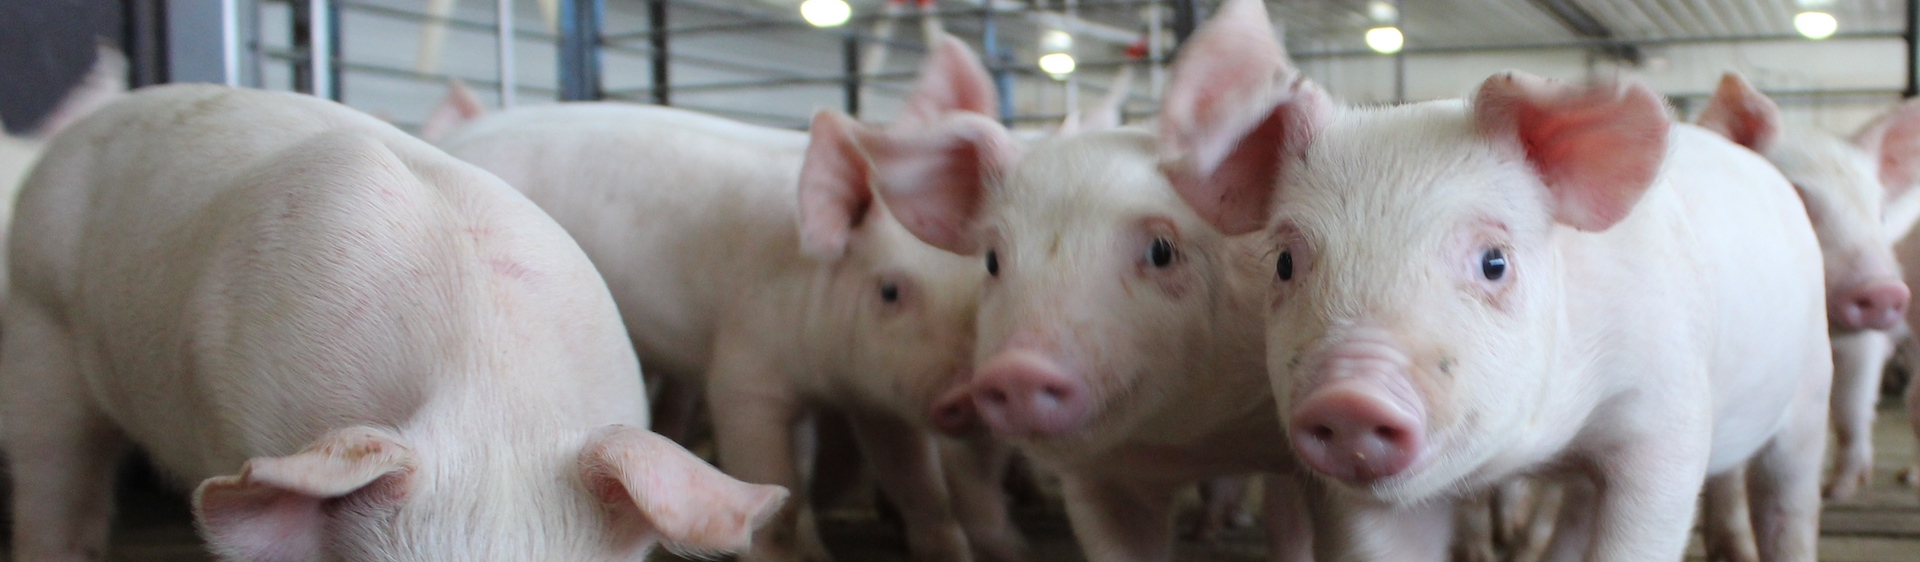 Greater production efficiency and a precision feeding model could emerge from uk pig project